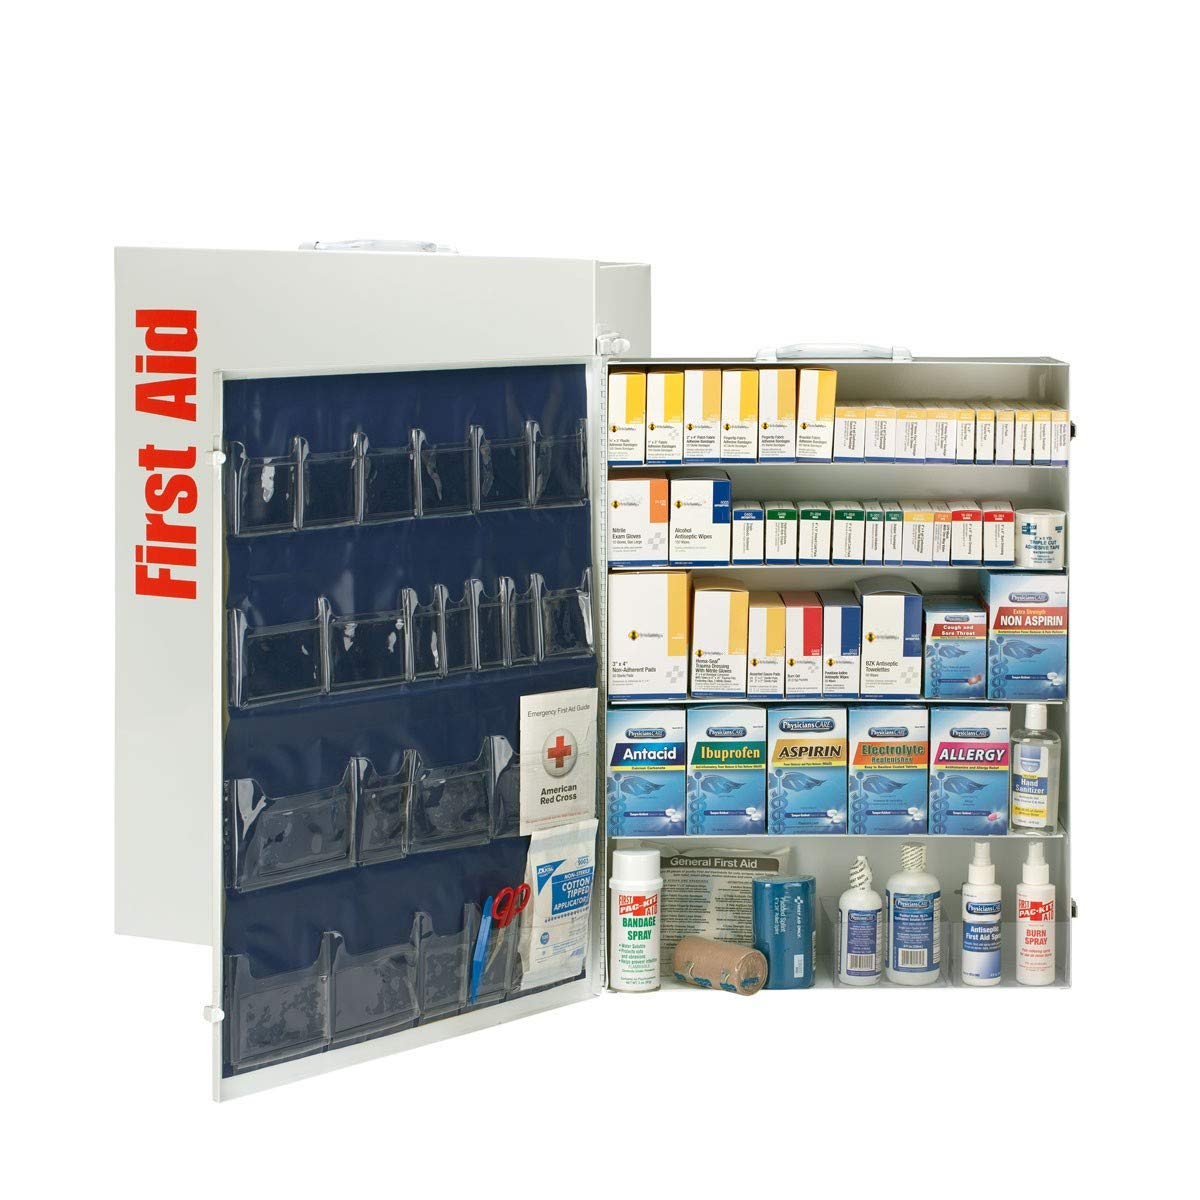 200 Person 5 Shelf First Aid Cabinet, ANSI B+, Type I & II with Medication, Metal-OSHA Compliant 2018 Trauma Kit First Aid Kit for Businesses Emergency Kit